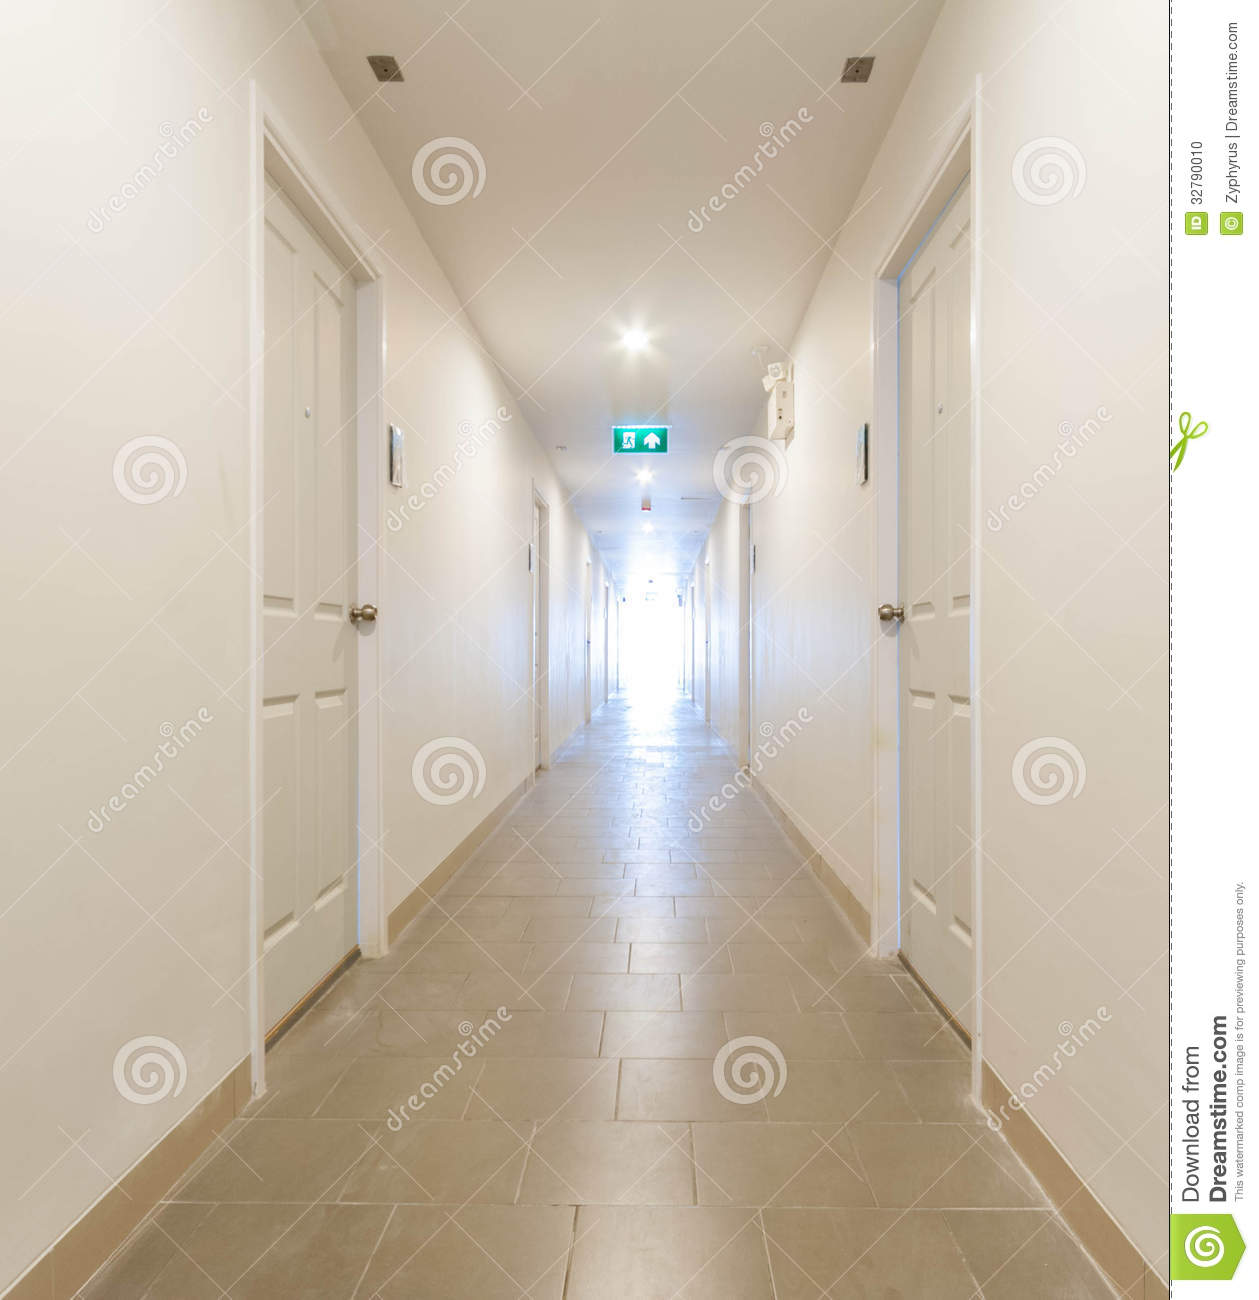 Long Corridor Building Hallway Stock Photo Image